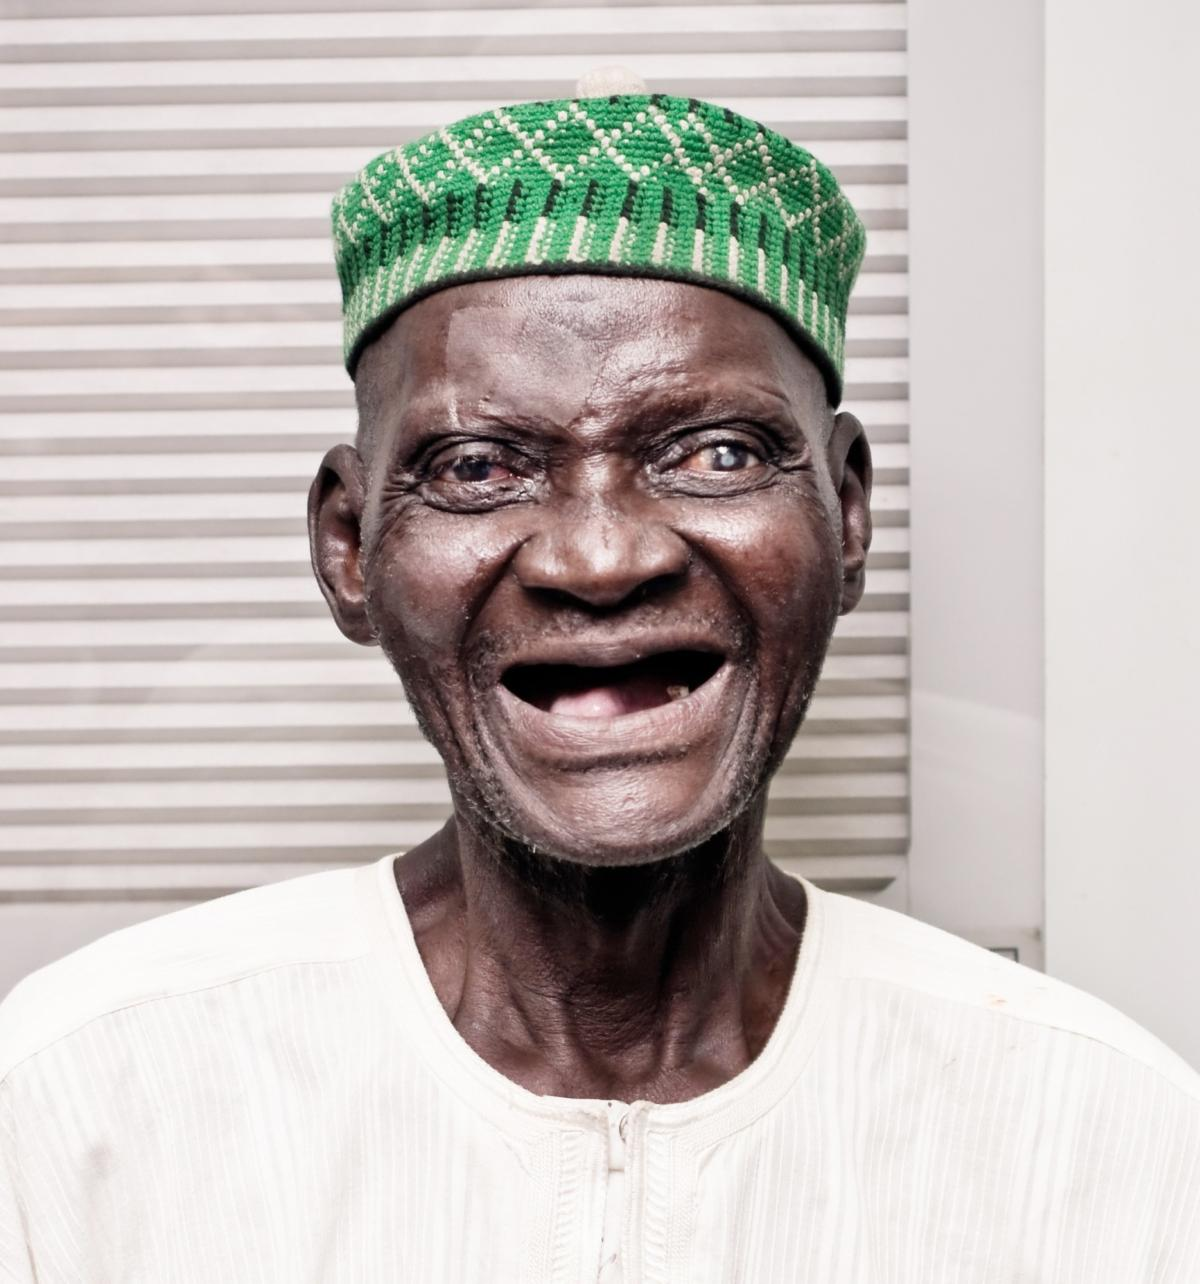 An elderly Nigerian male grins into the camera, a cataract obvious in one eye. He's wearing a bright green hat and loving it